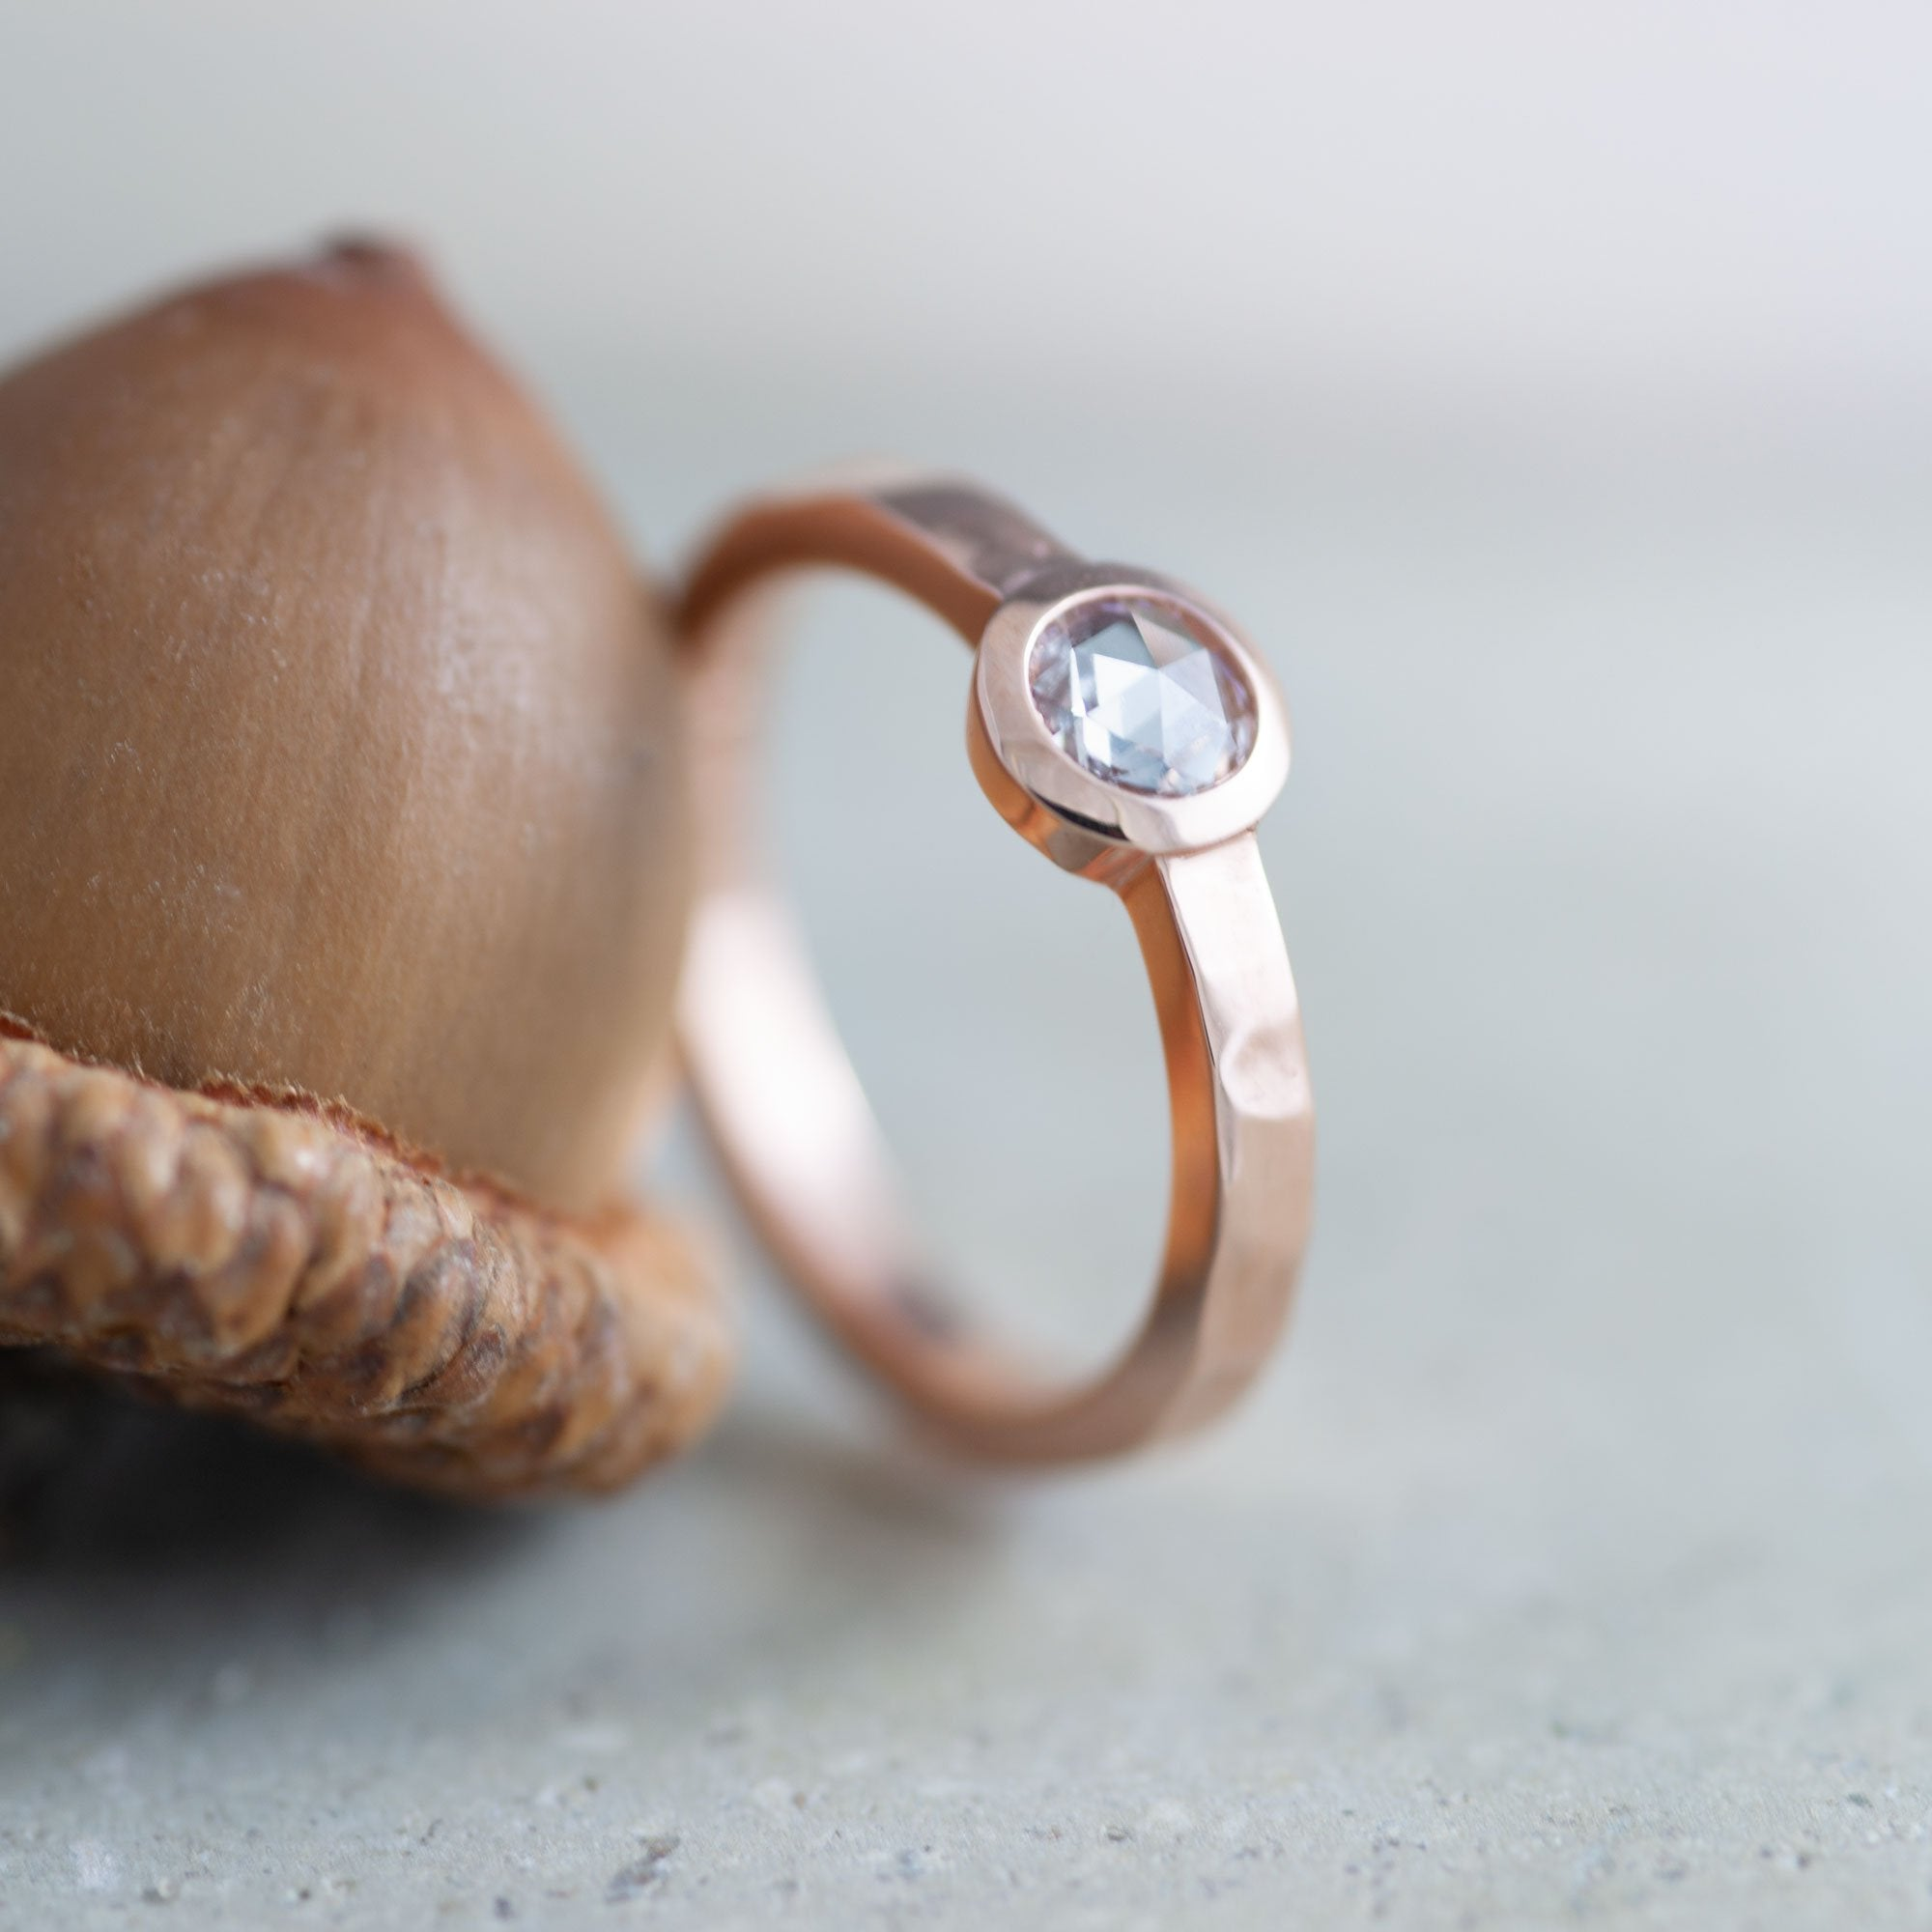 Naiad Rose Diamond Engagement Ring | Era Design Vancouver Canada